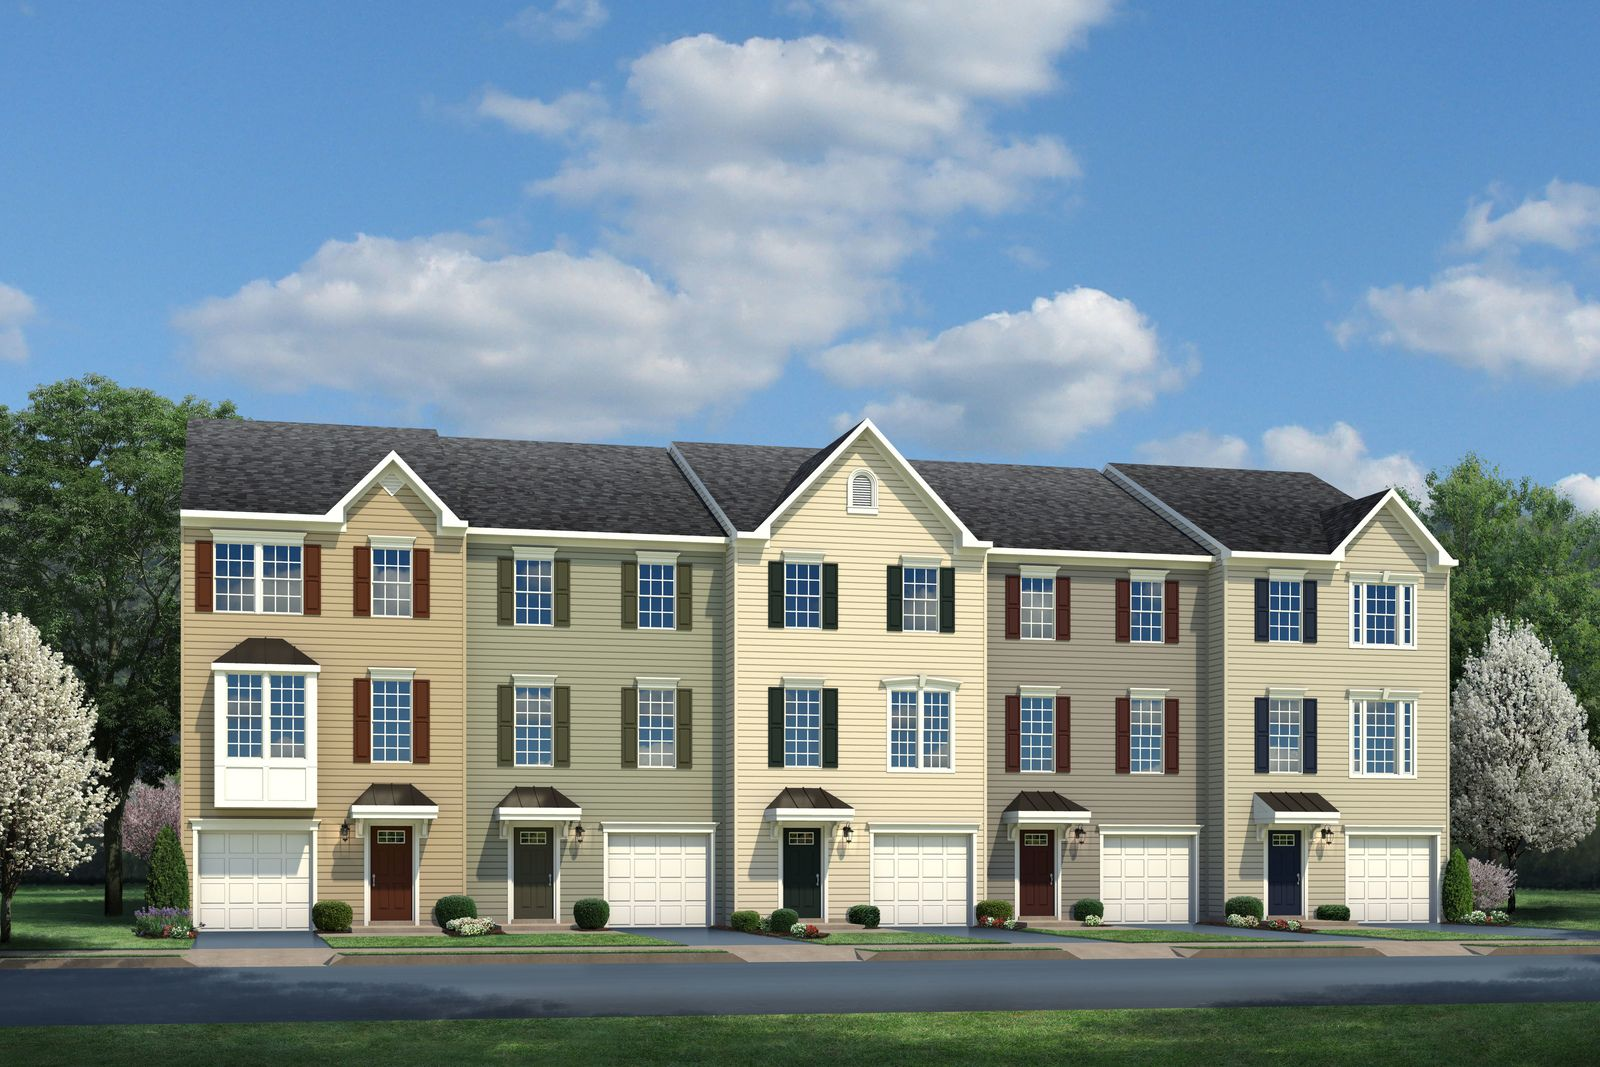 COMING SOON TO LOCUST GROVE - WILDERNESS SHORES TOWNHOMES FROM THE LOW $200S!:The lowest priced garage townhomes in an amenity-filled community with pool, clubhouse, playground & trails just 15 minutes to Fredericksburg!Click here to Join the VIP List.